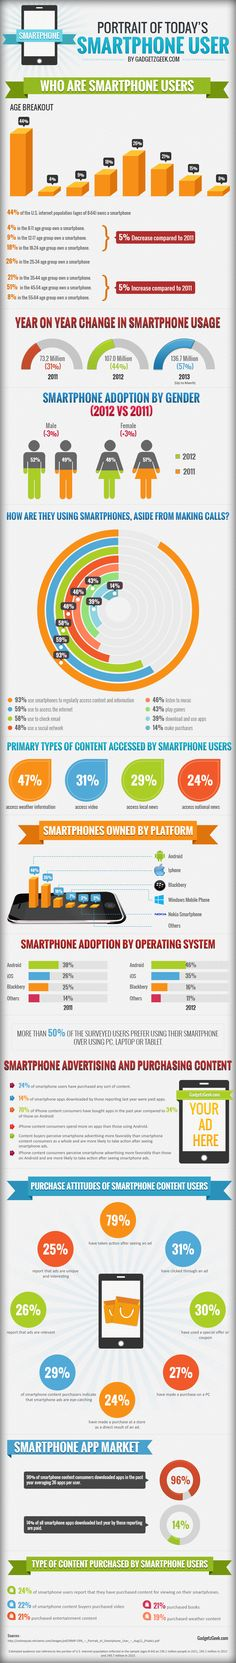 Portrait Of Today's Smartphone User #Infographic #Smartphones #Technoogy